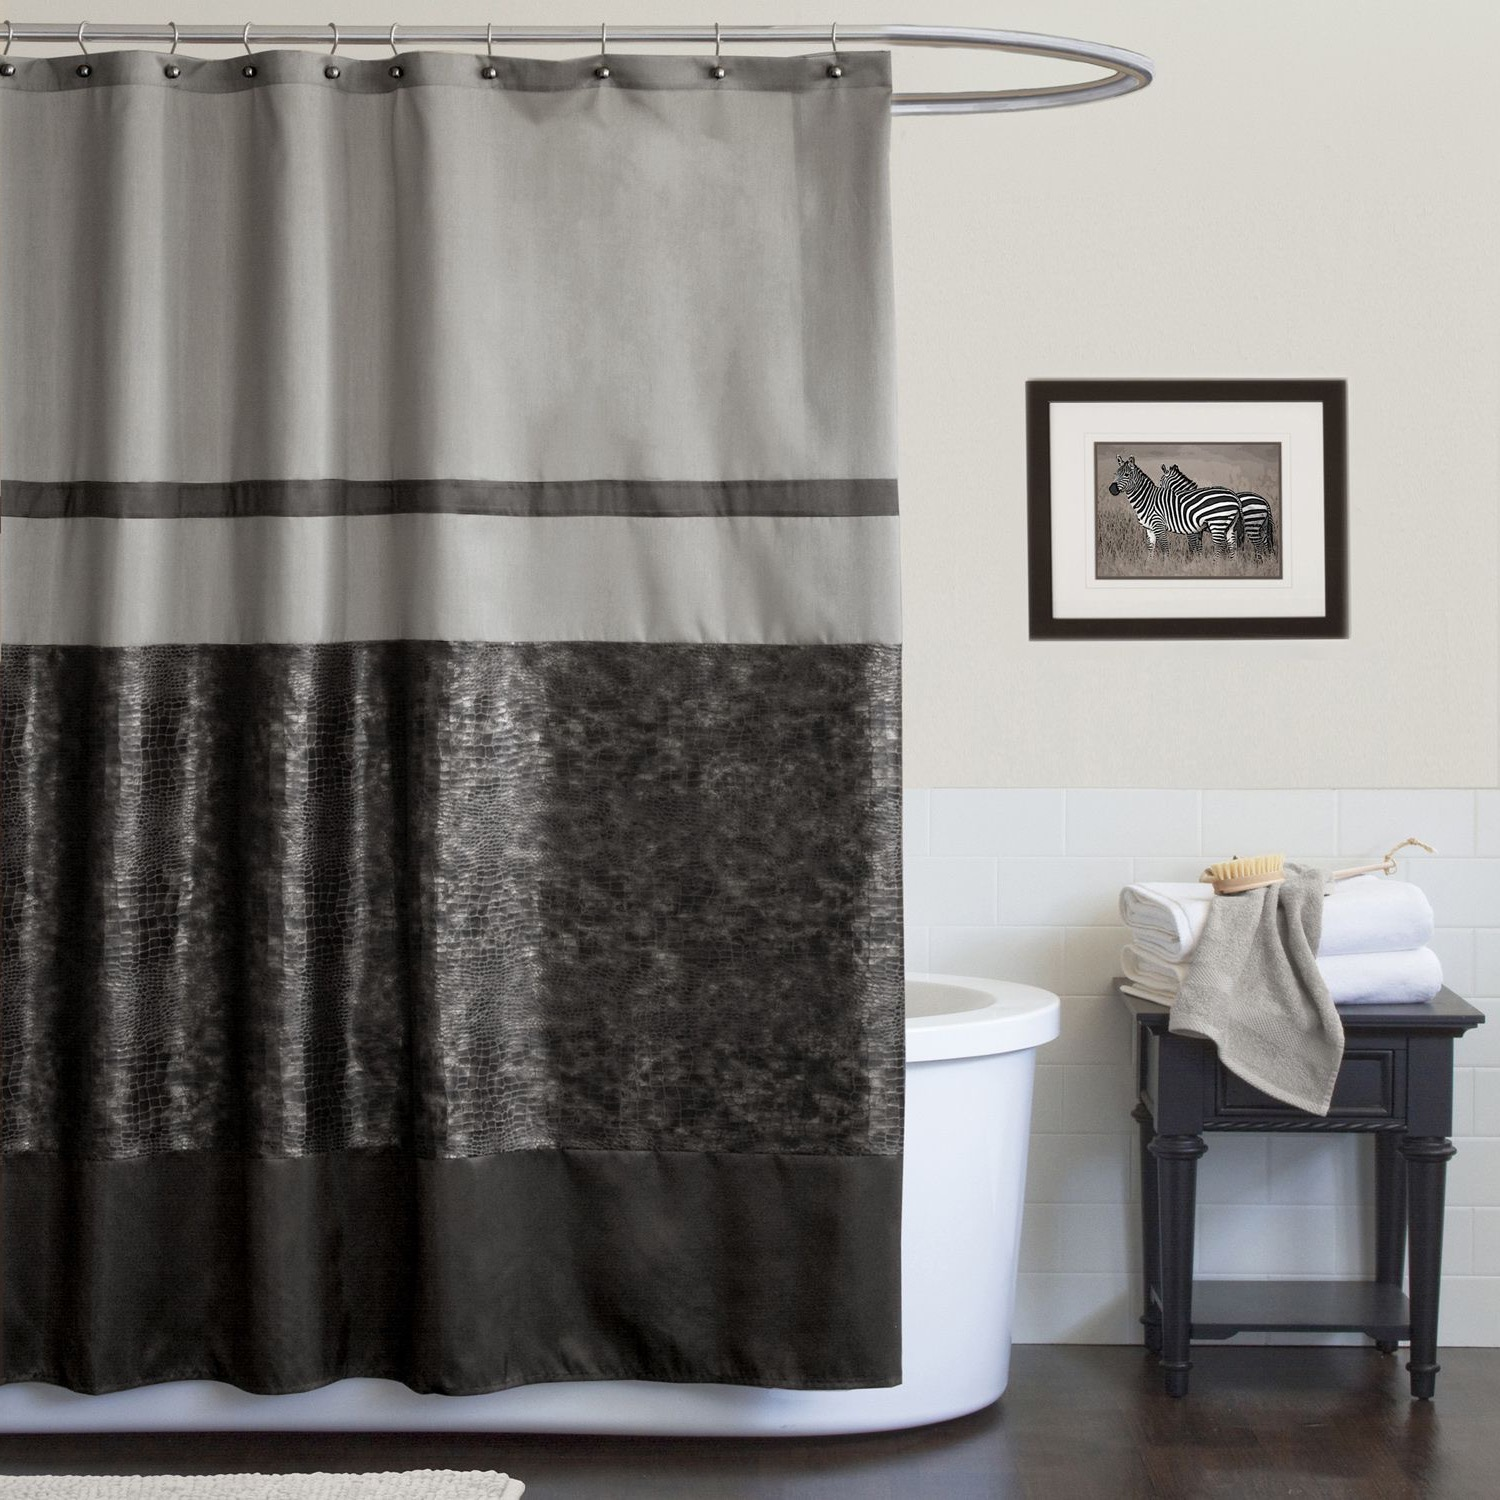 Modern Shower Curtain In Dark Color (View 9 of 15)